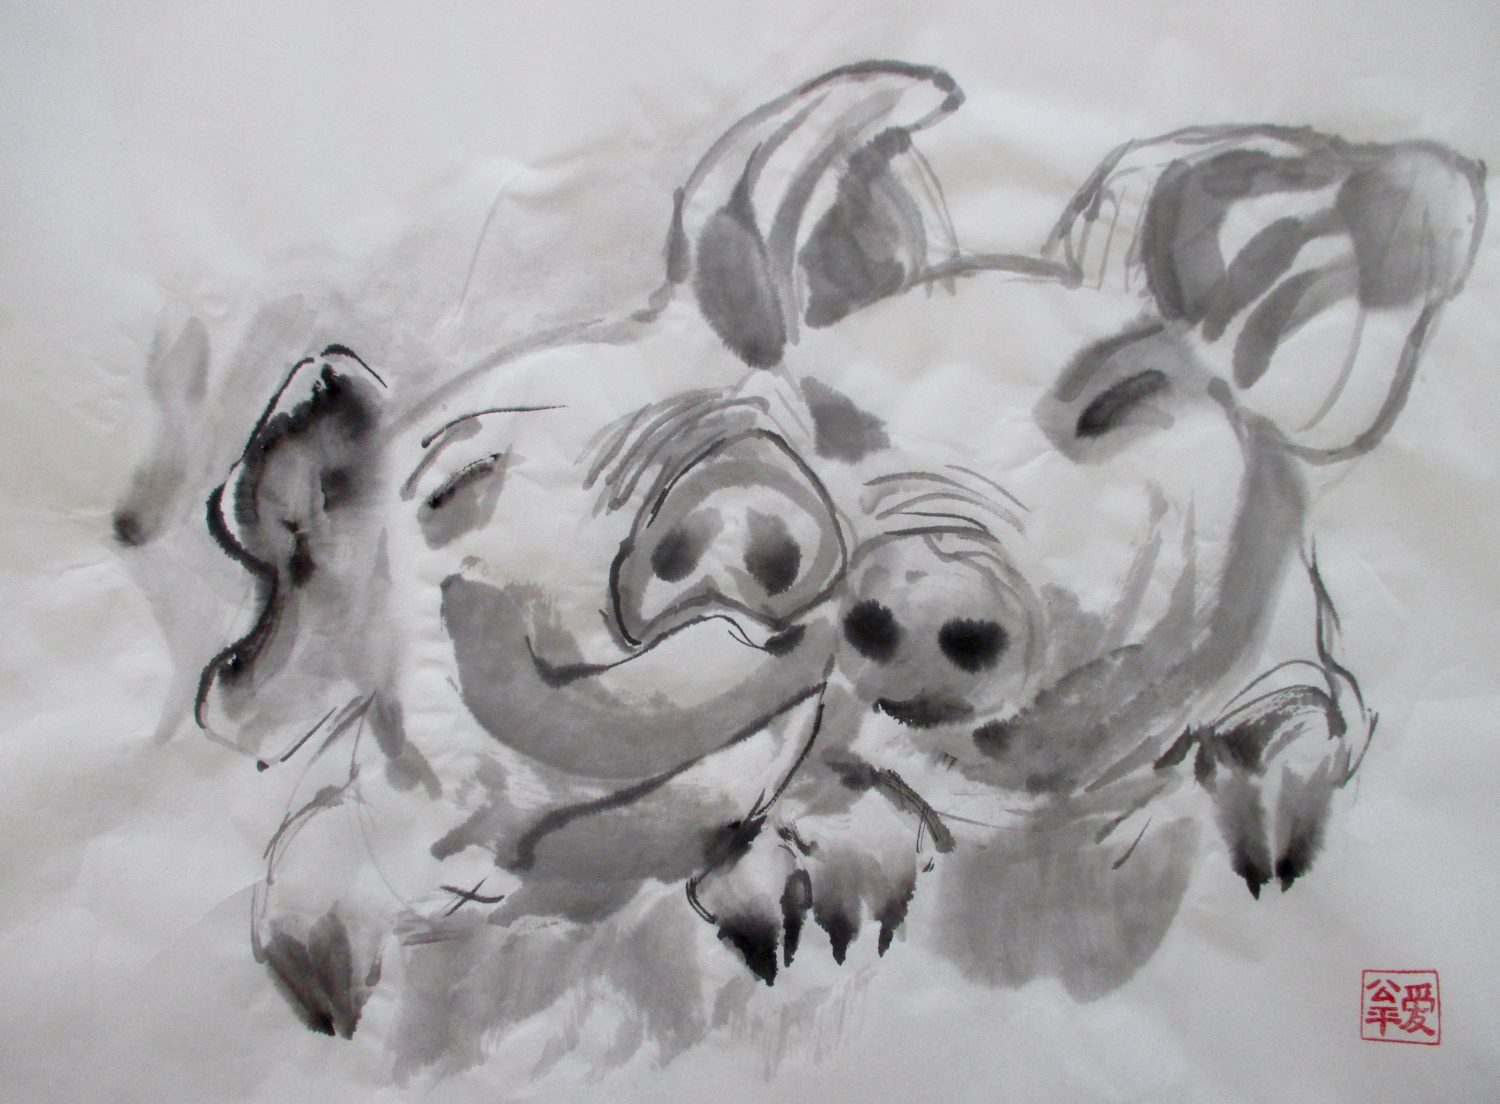 2 little pigs, new try